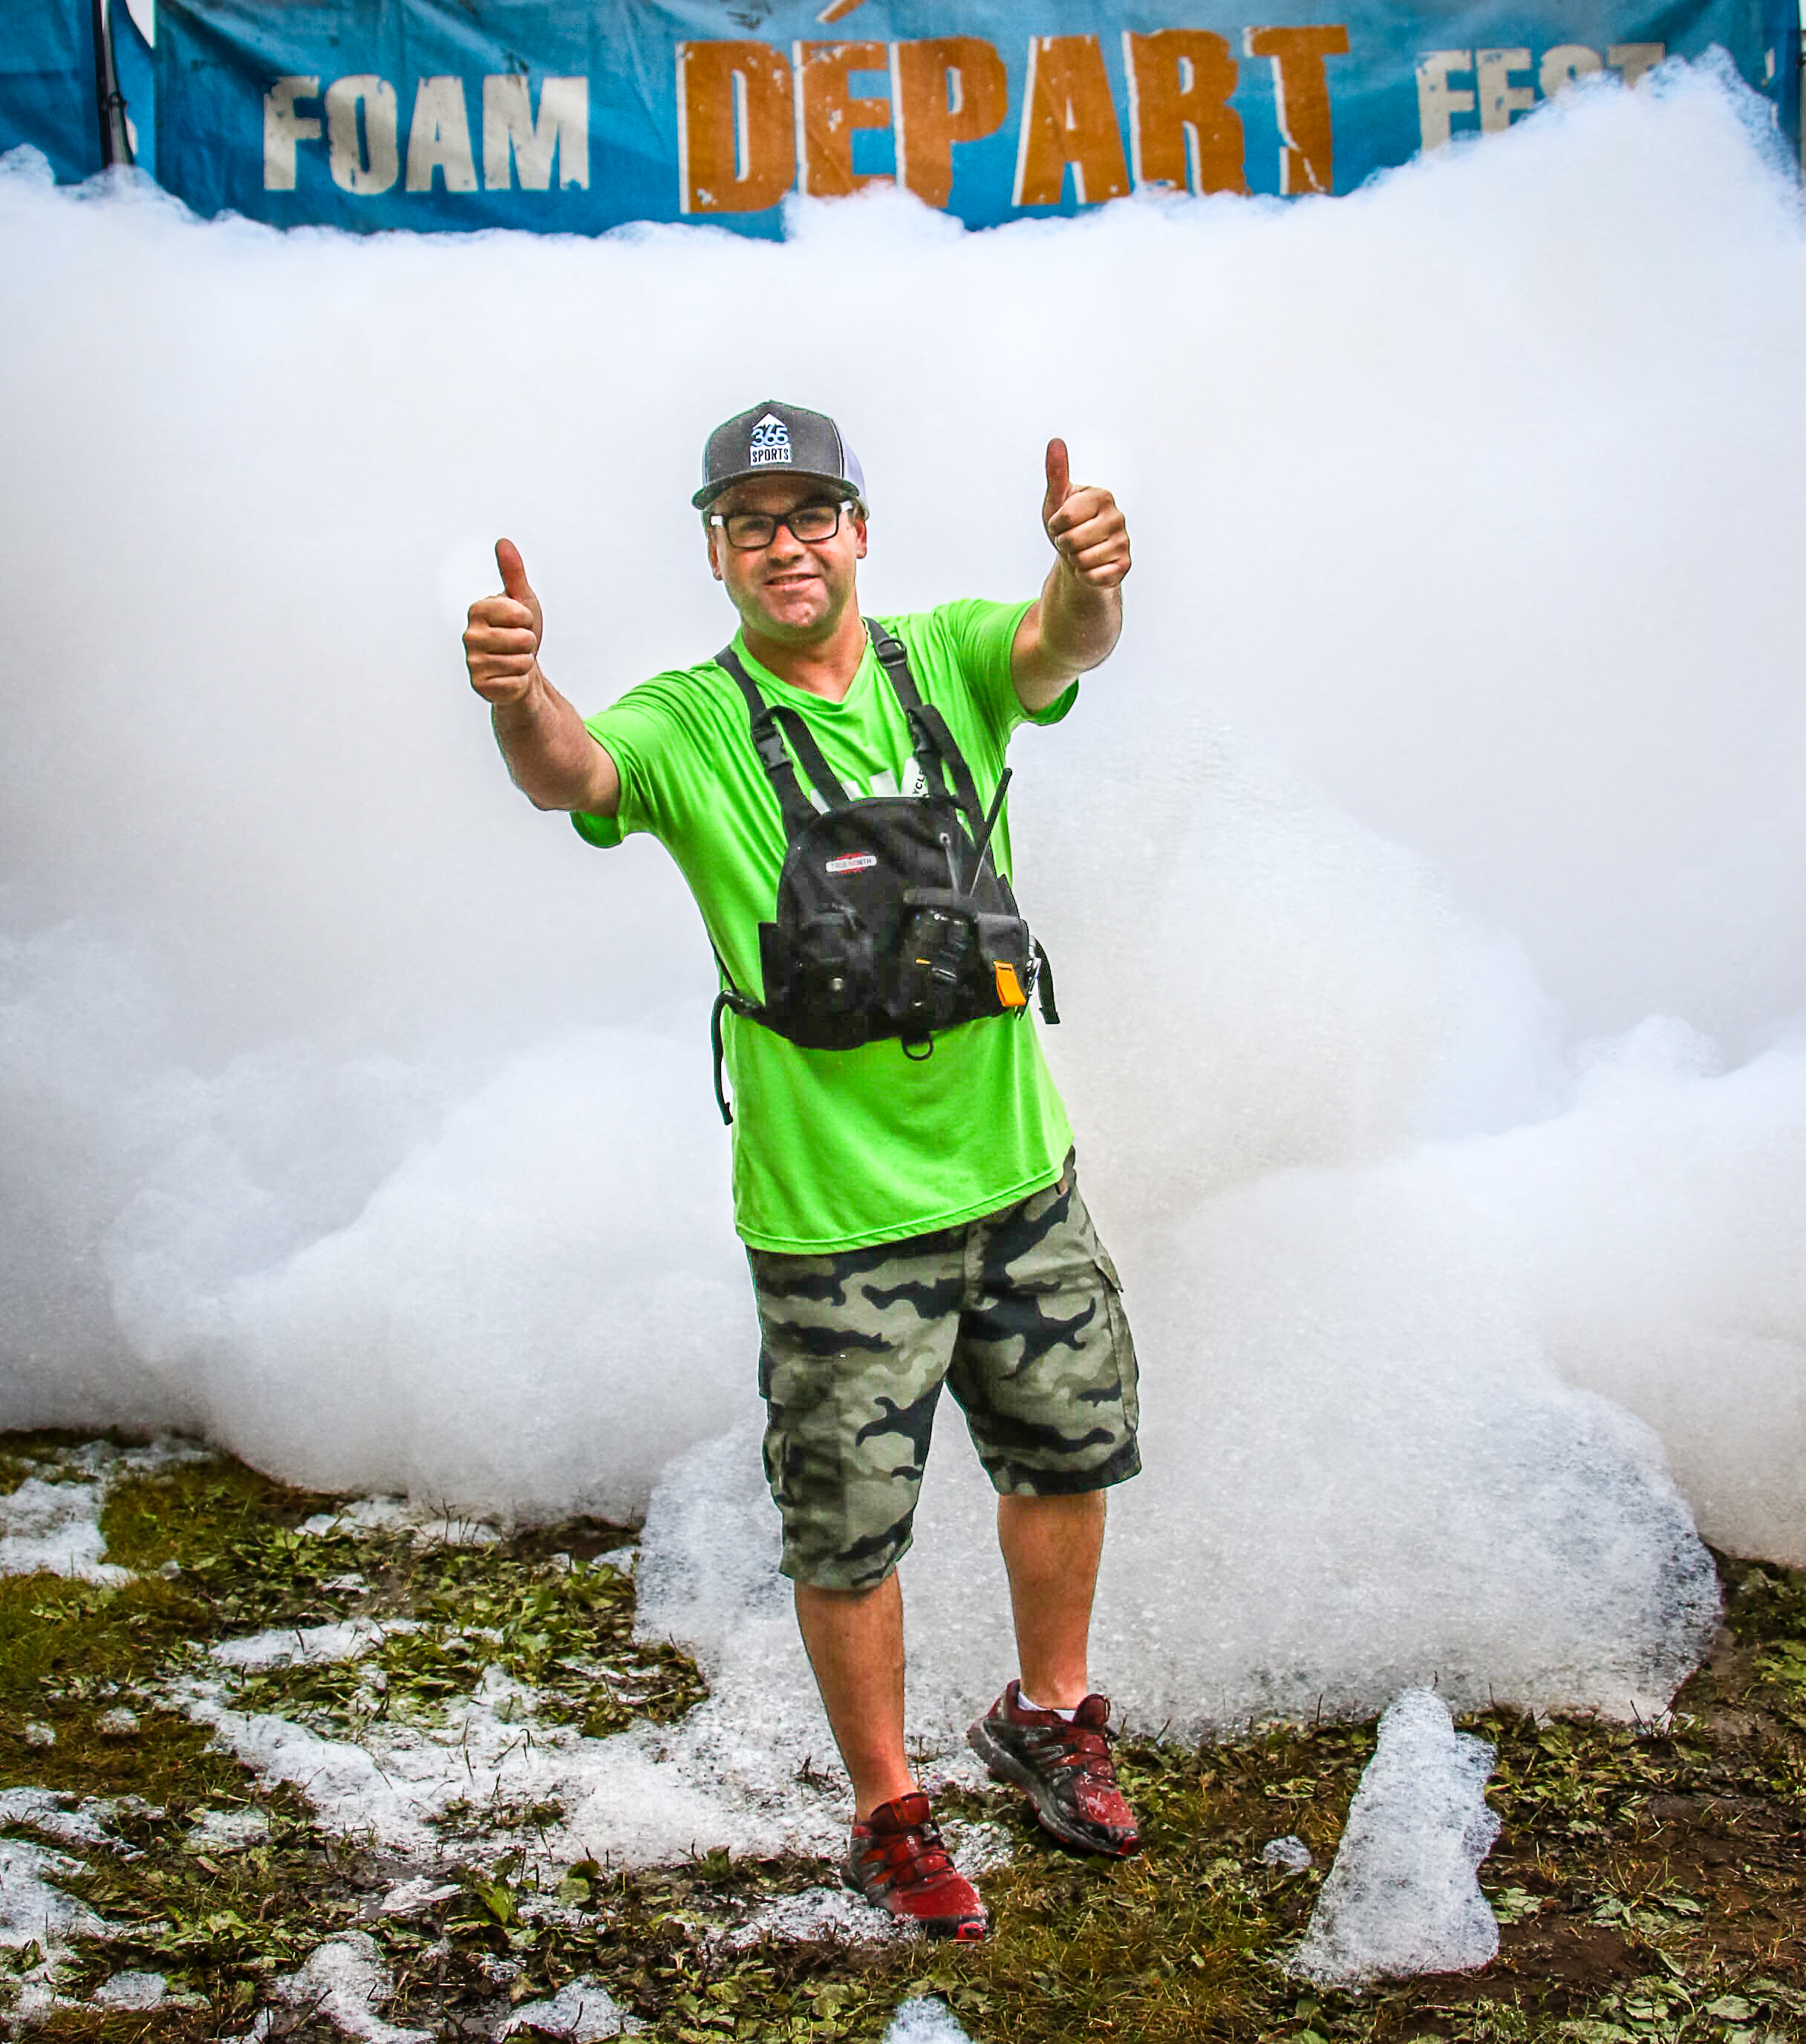 5K Foam Fest USA Return